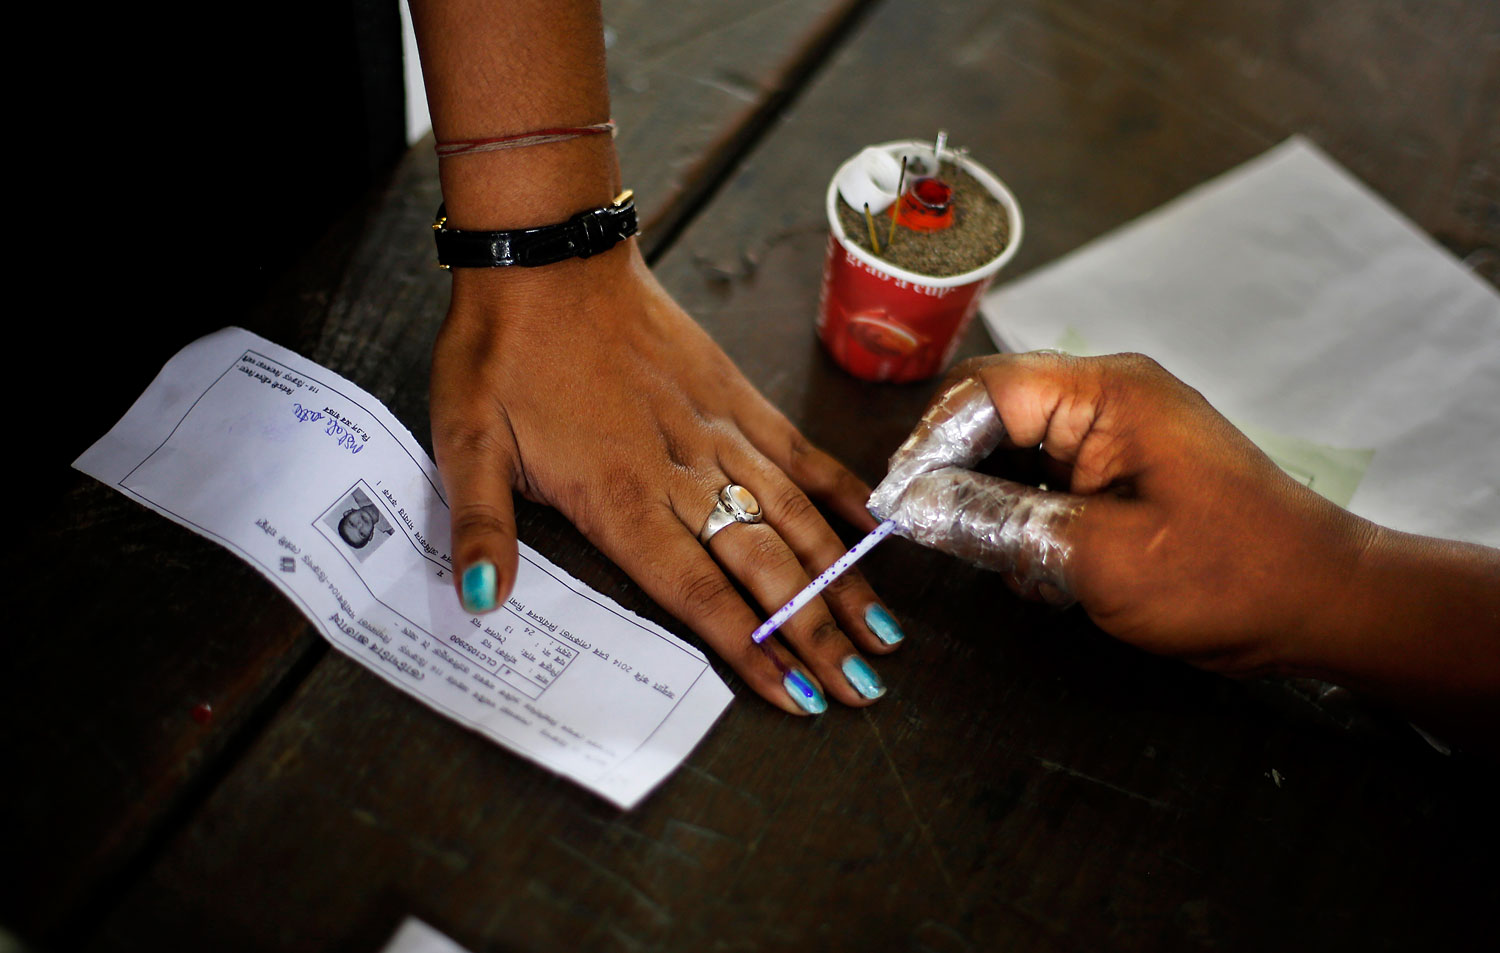 An Indian election officer applies an indelible ink mark on the finger of a woman during the first phase of elections in Dibrugarh, in the northeastern state of Assam, India, April 7, 2014.